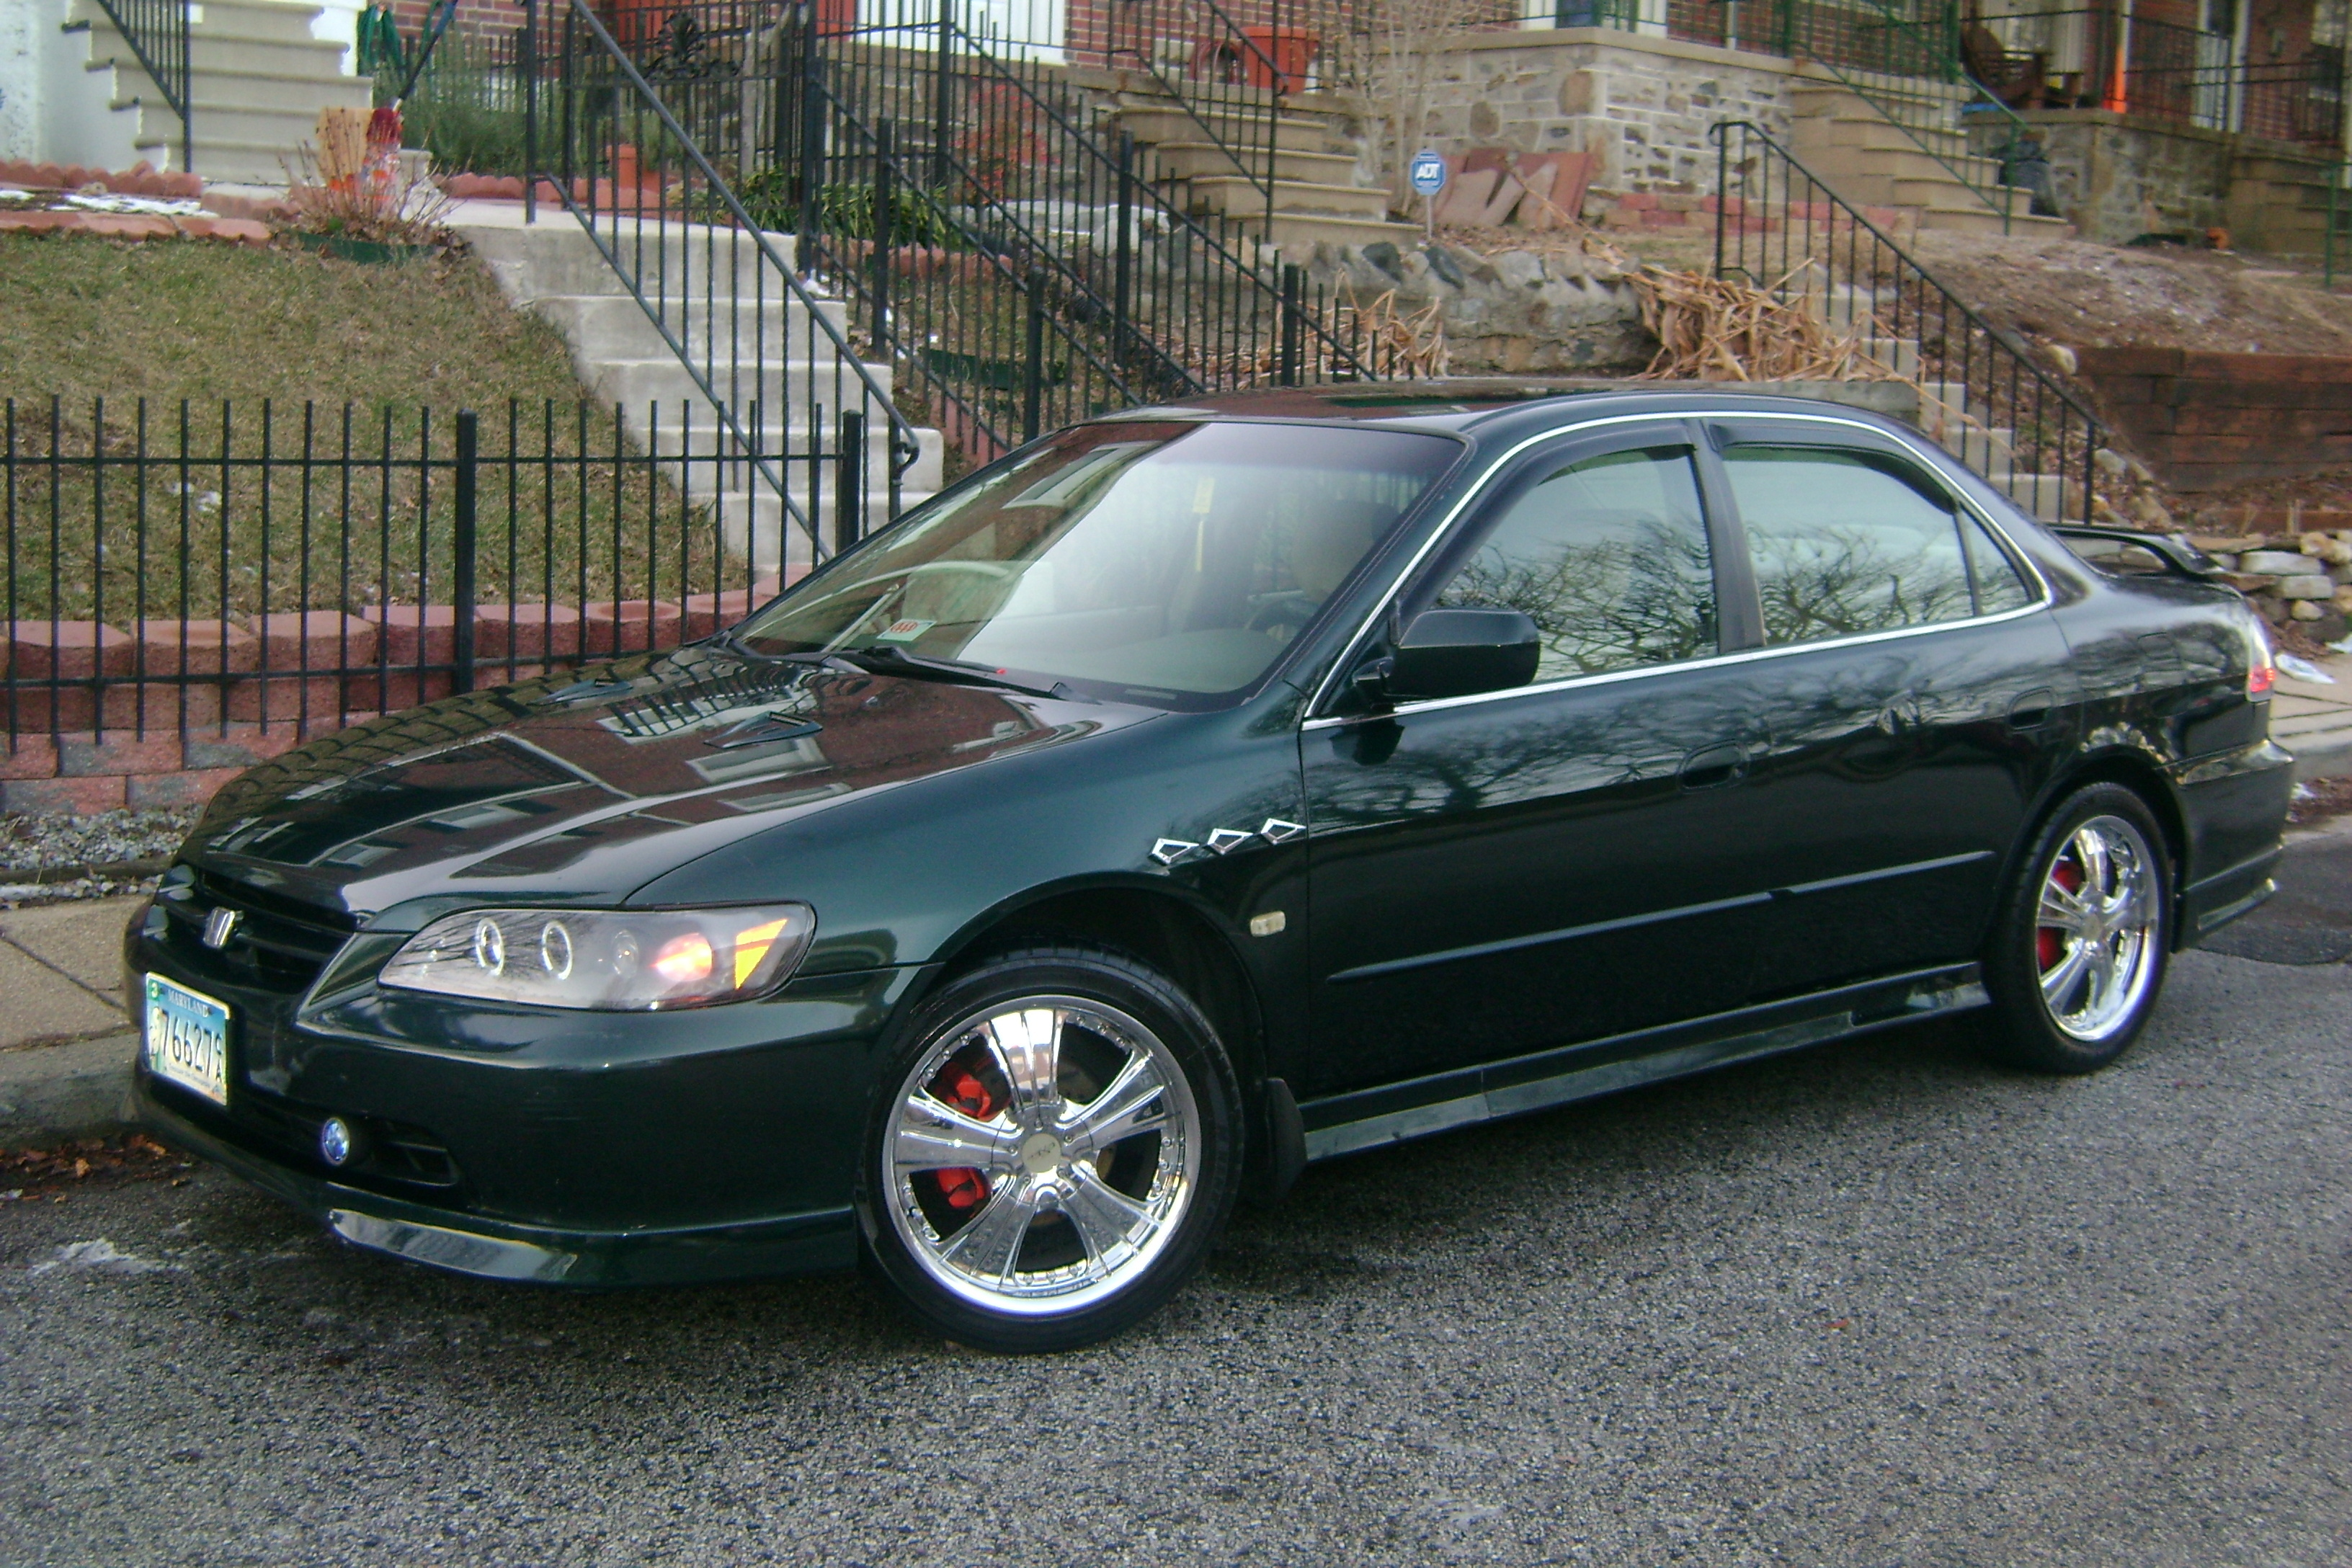 Bull_002 2000 Honda Accord